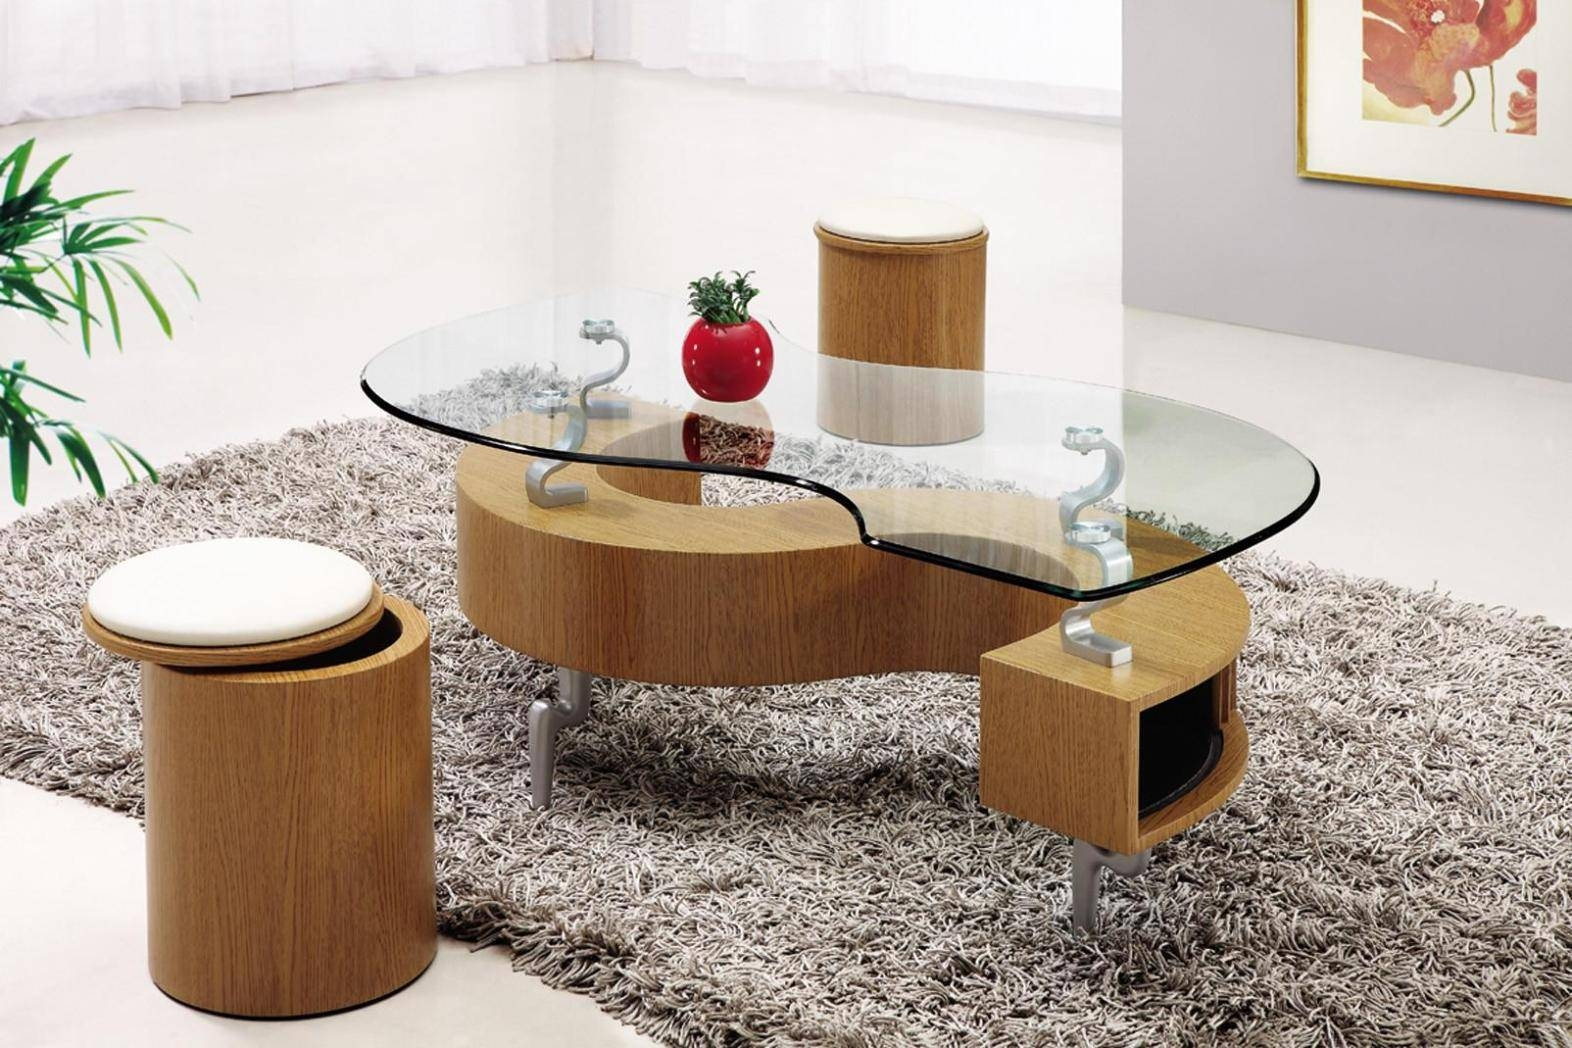 Coffee Table: Stylish Coffee Table With Stools Underneath Ideas Throughout Coffee Table With Stools (View 8 of 30)